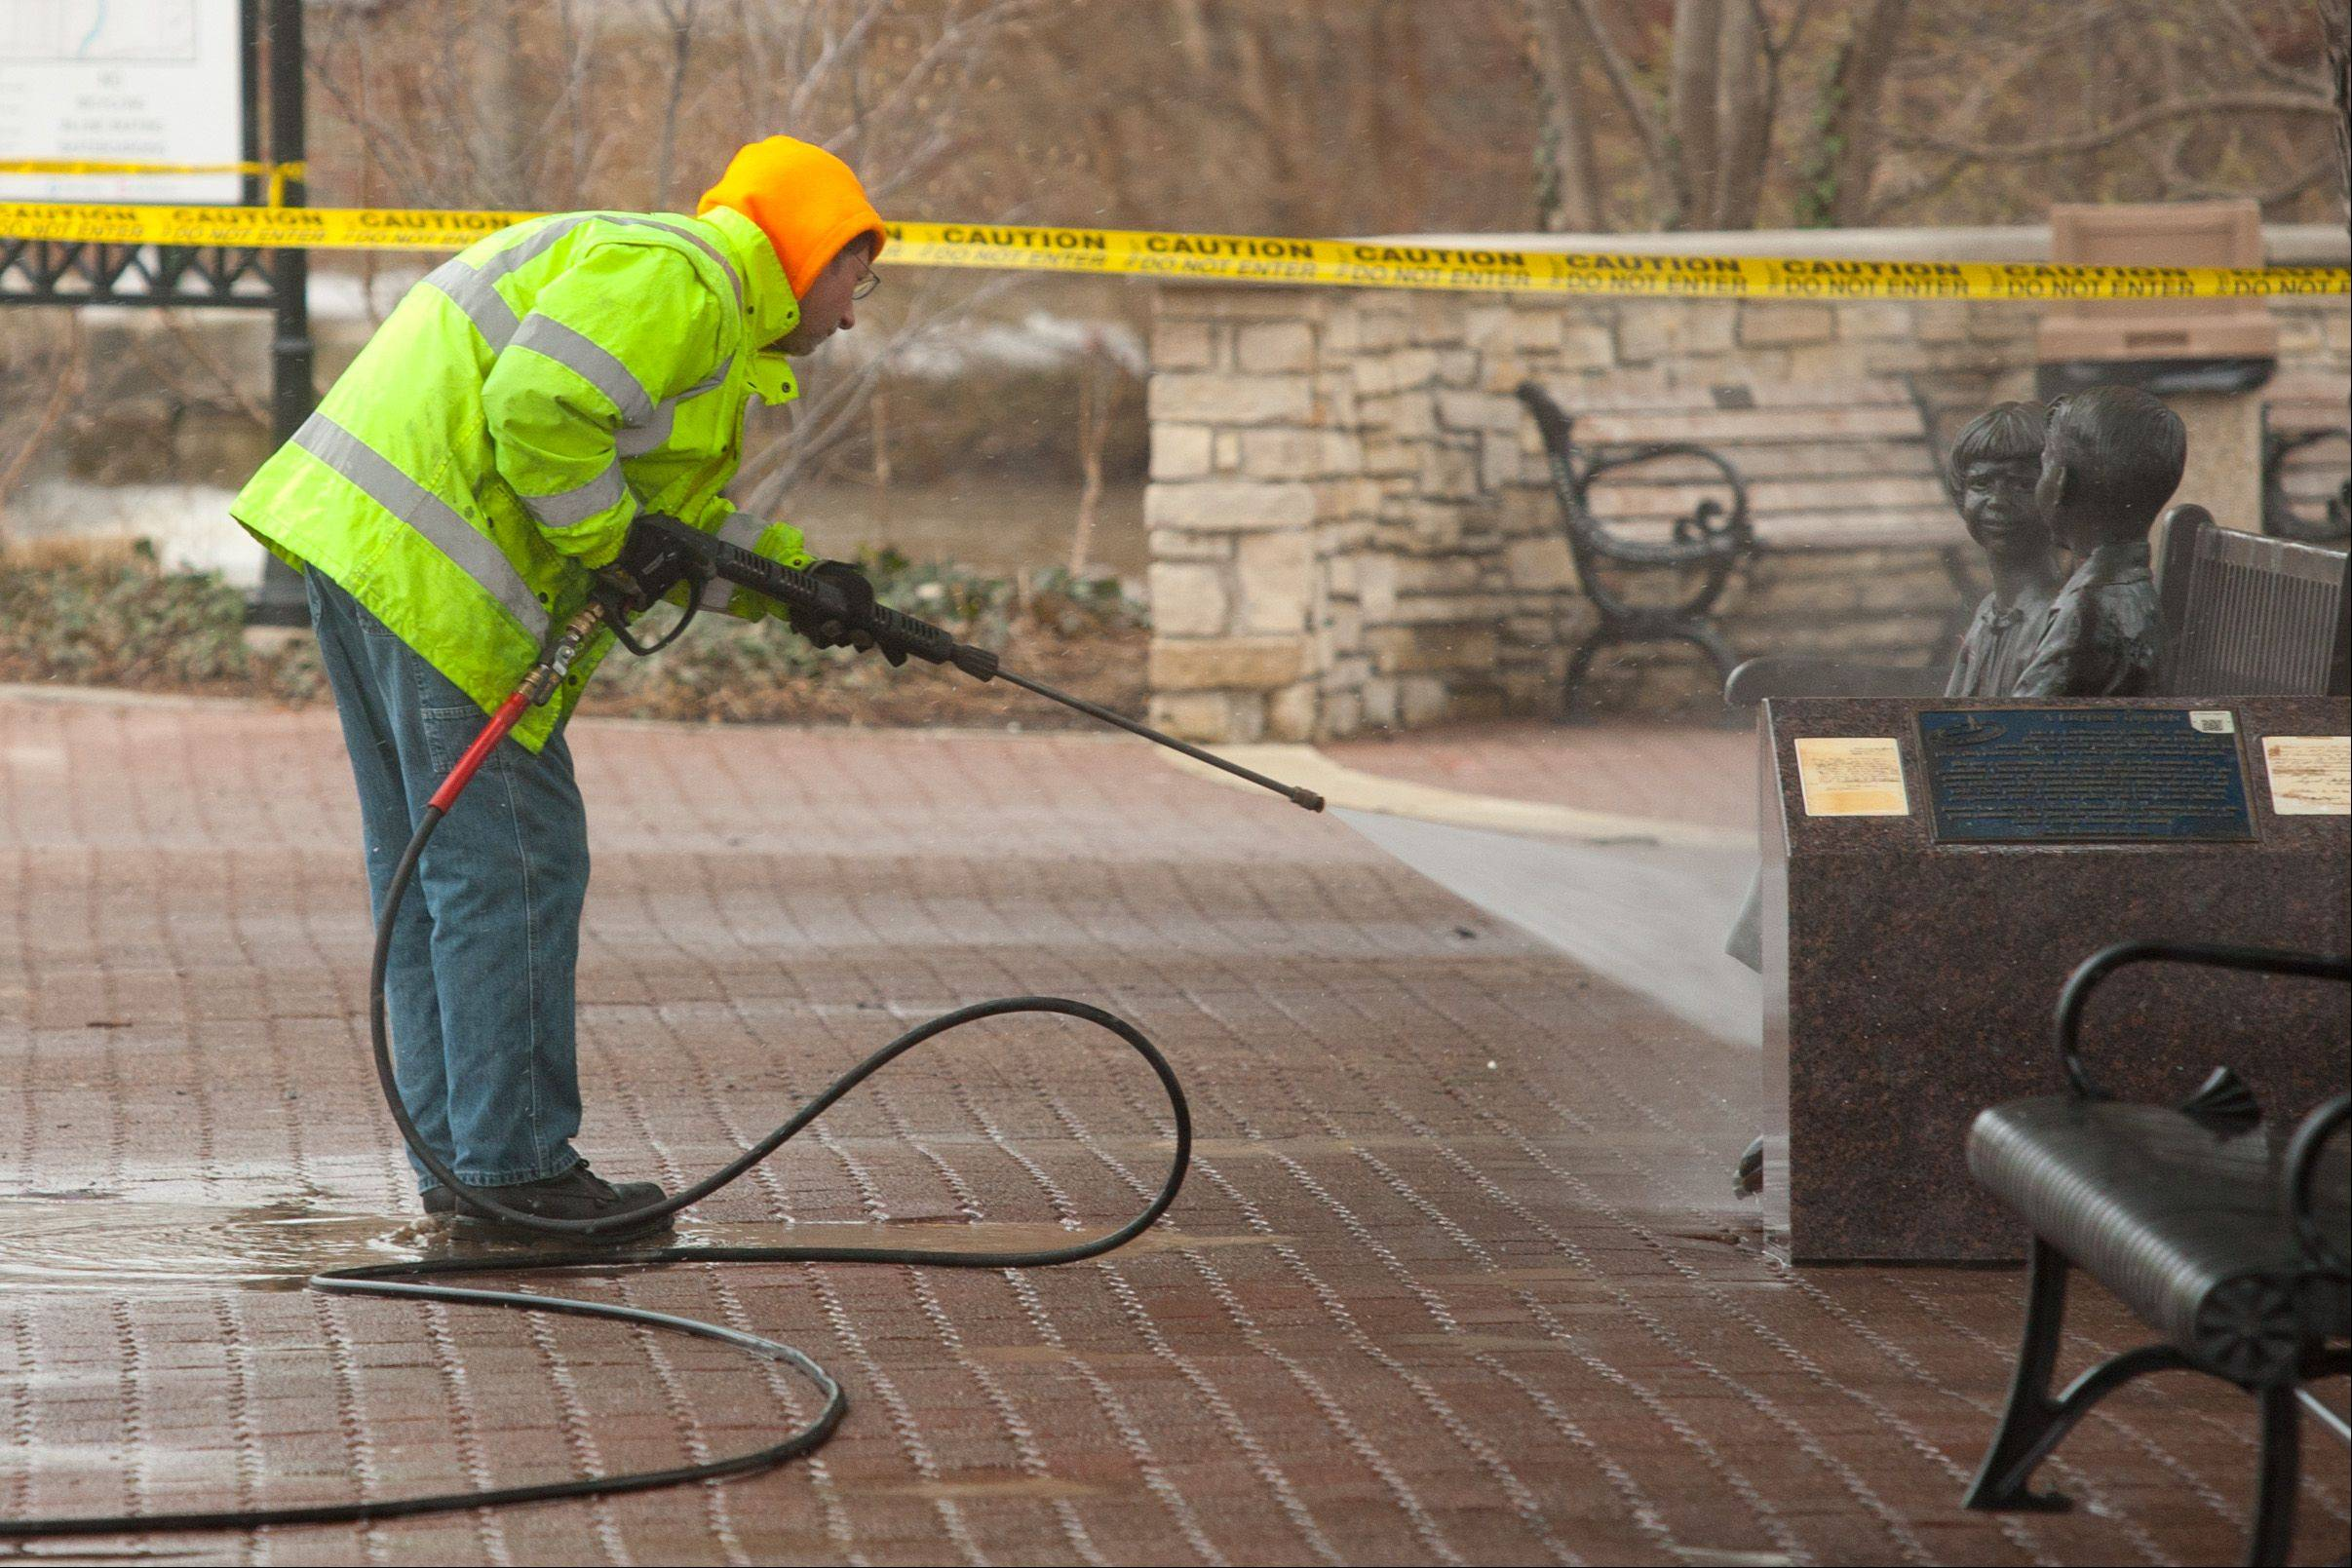 Public works employee Scott Kulak power washes, as the city of Naperville works to clean up from ravaging downtown flooding.